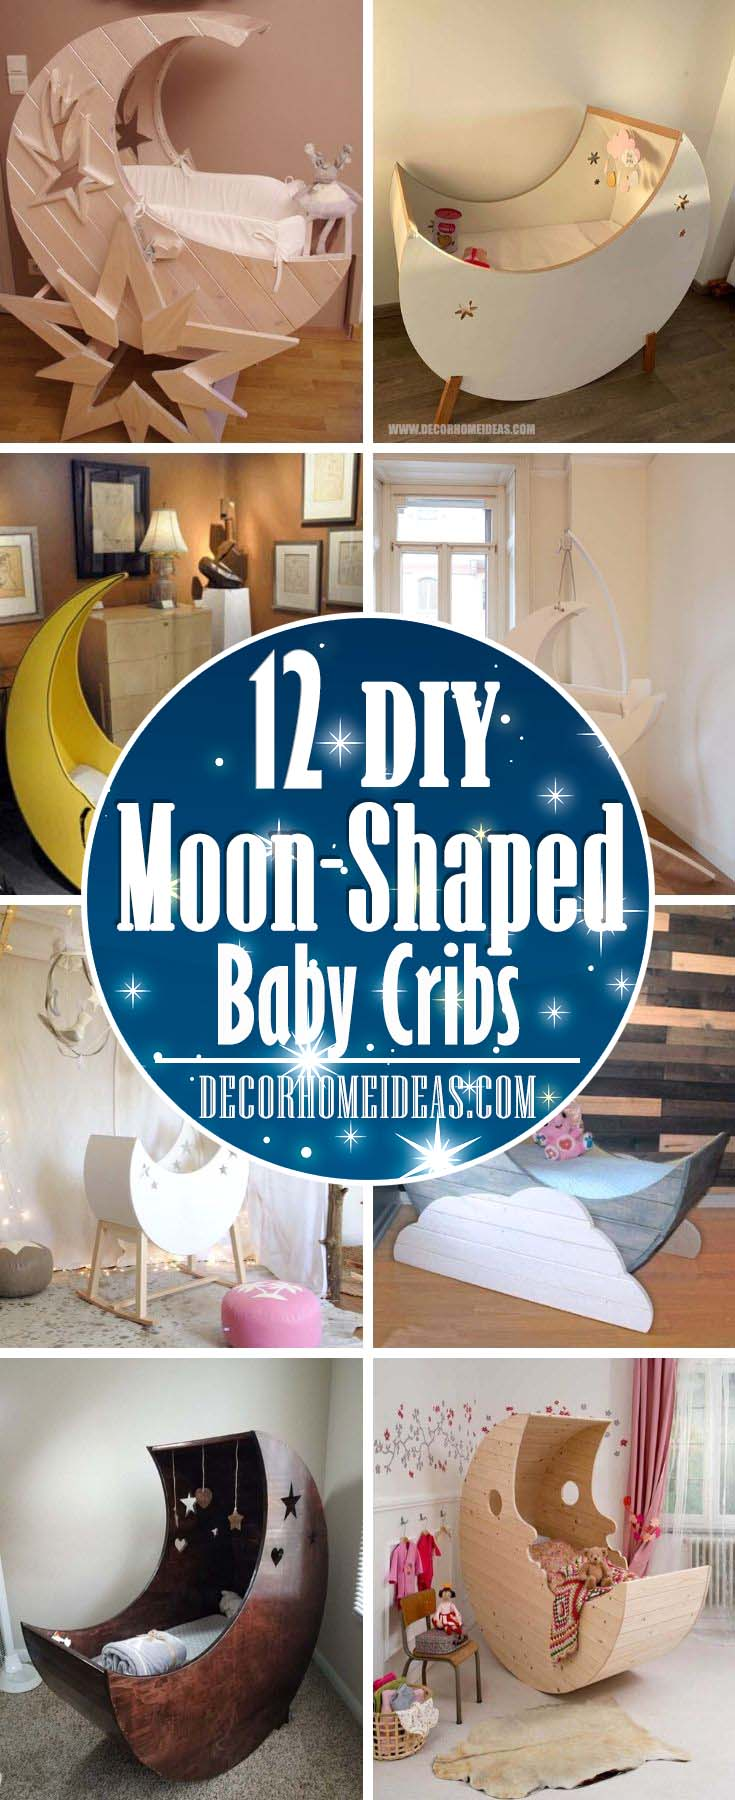 DIY Moon Shaped Baby Crib. How To Make Your Own Moon-Shaped Baby Crib. Supplies and materials, ideas and photos.  #moon #crib #baby #cot #decorhomeideas